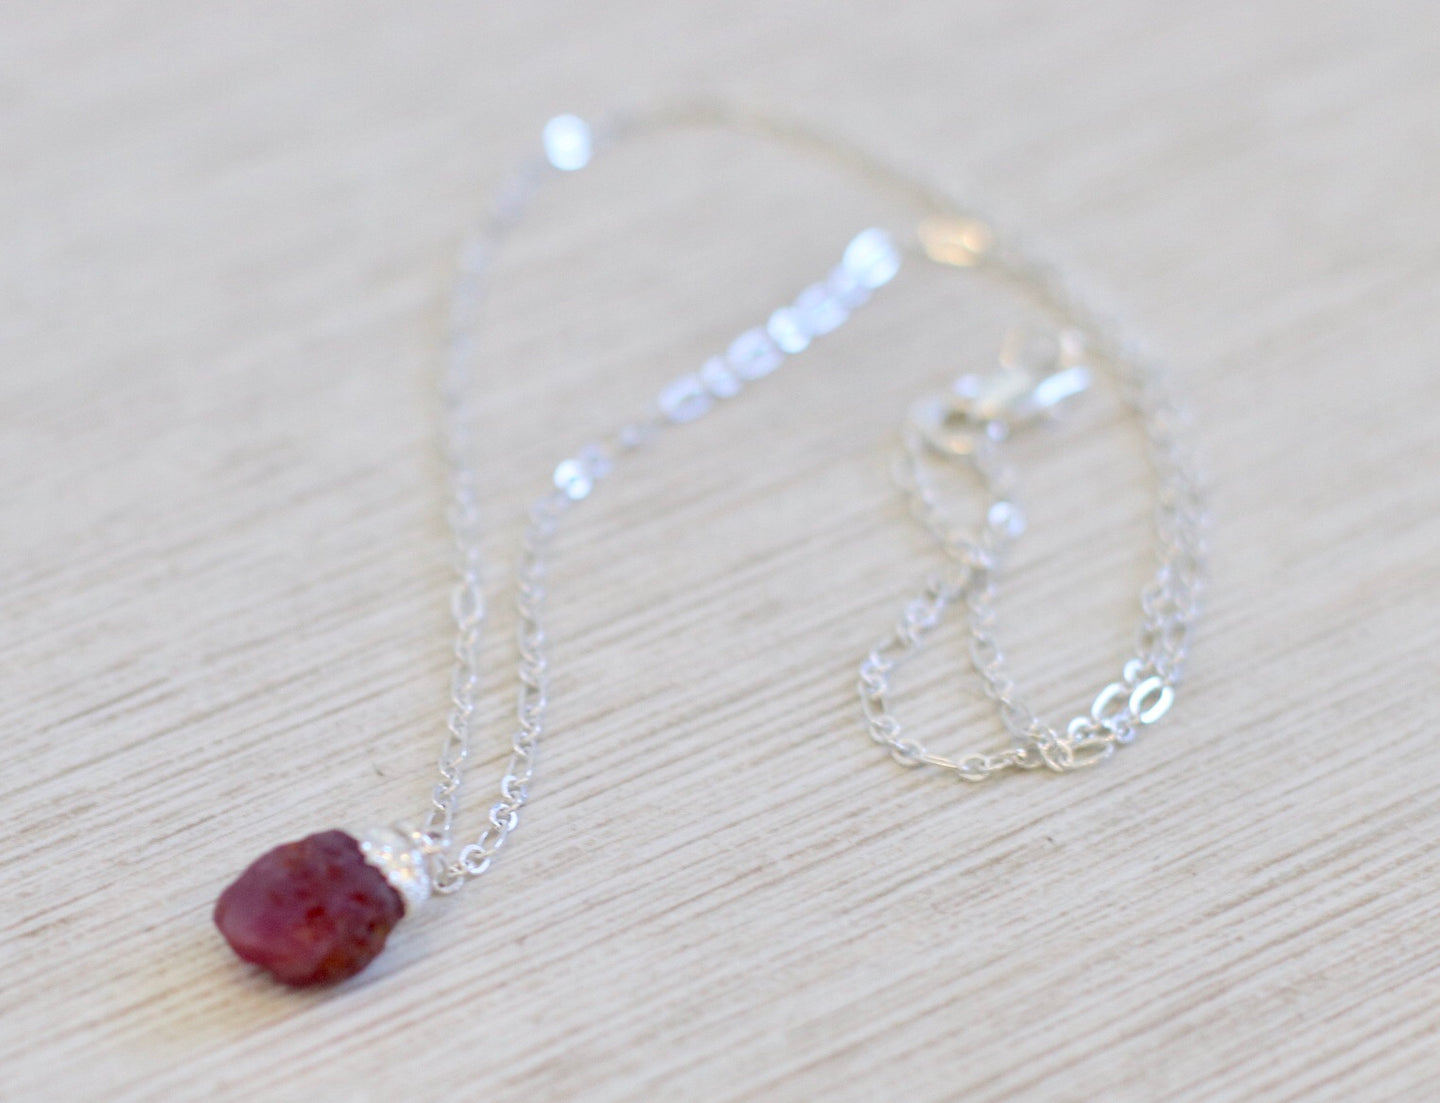 The Ruby Necklace